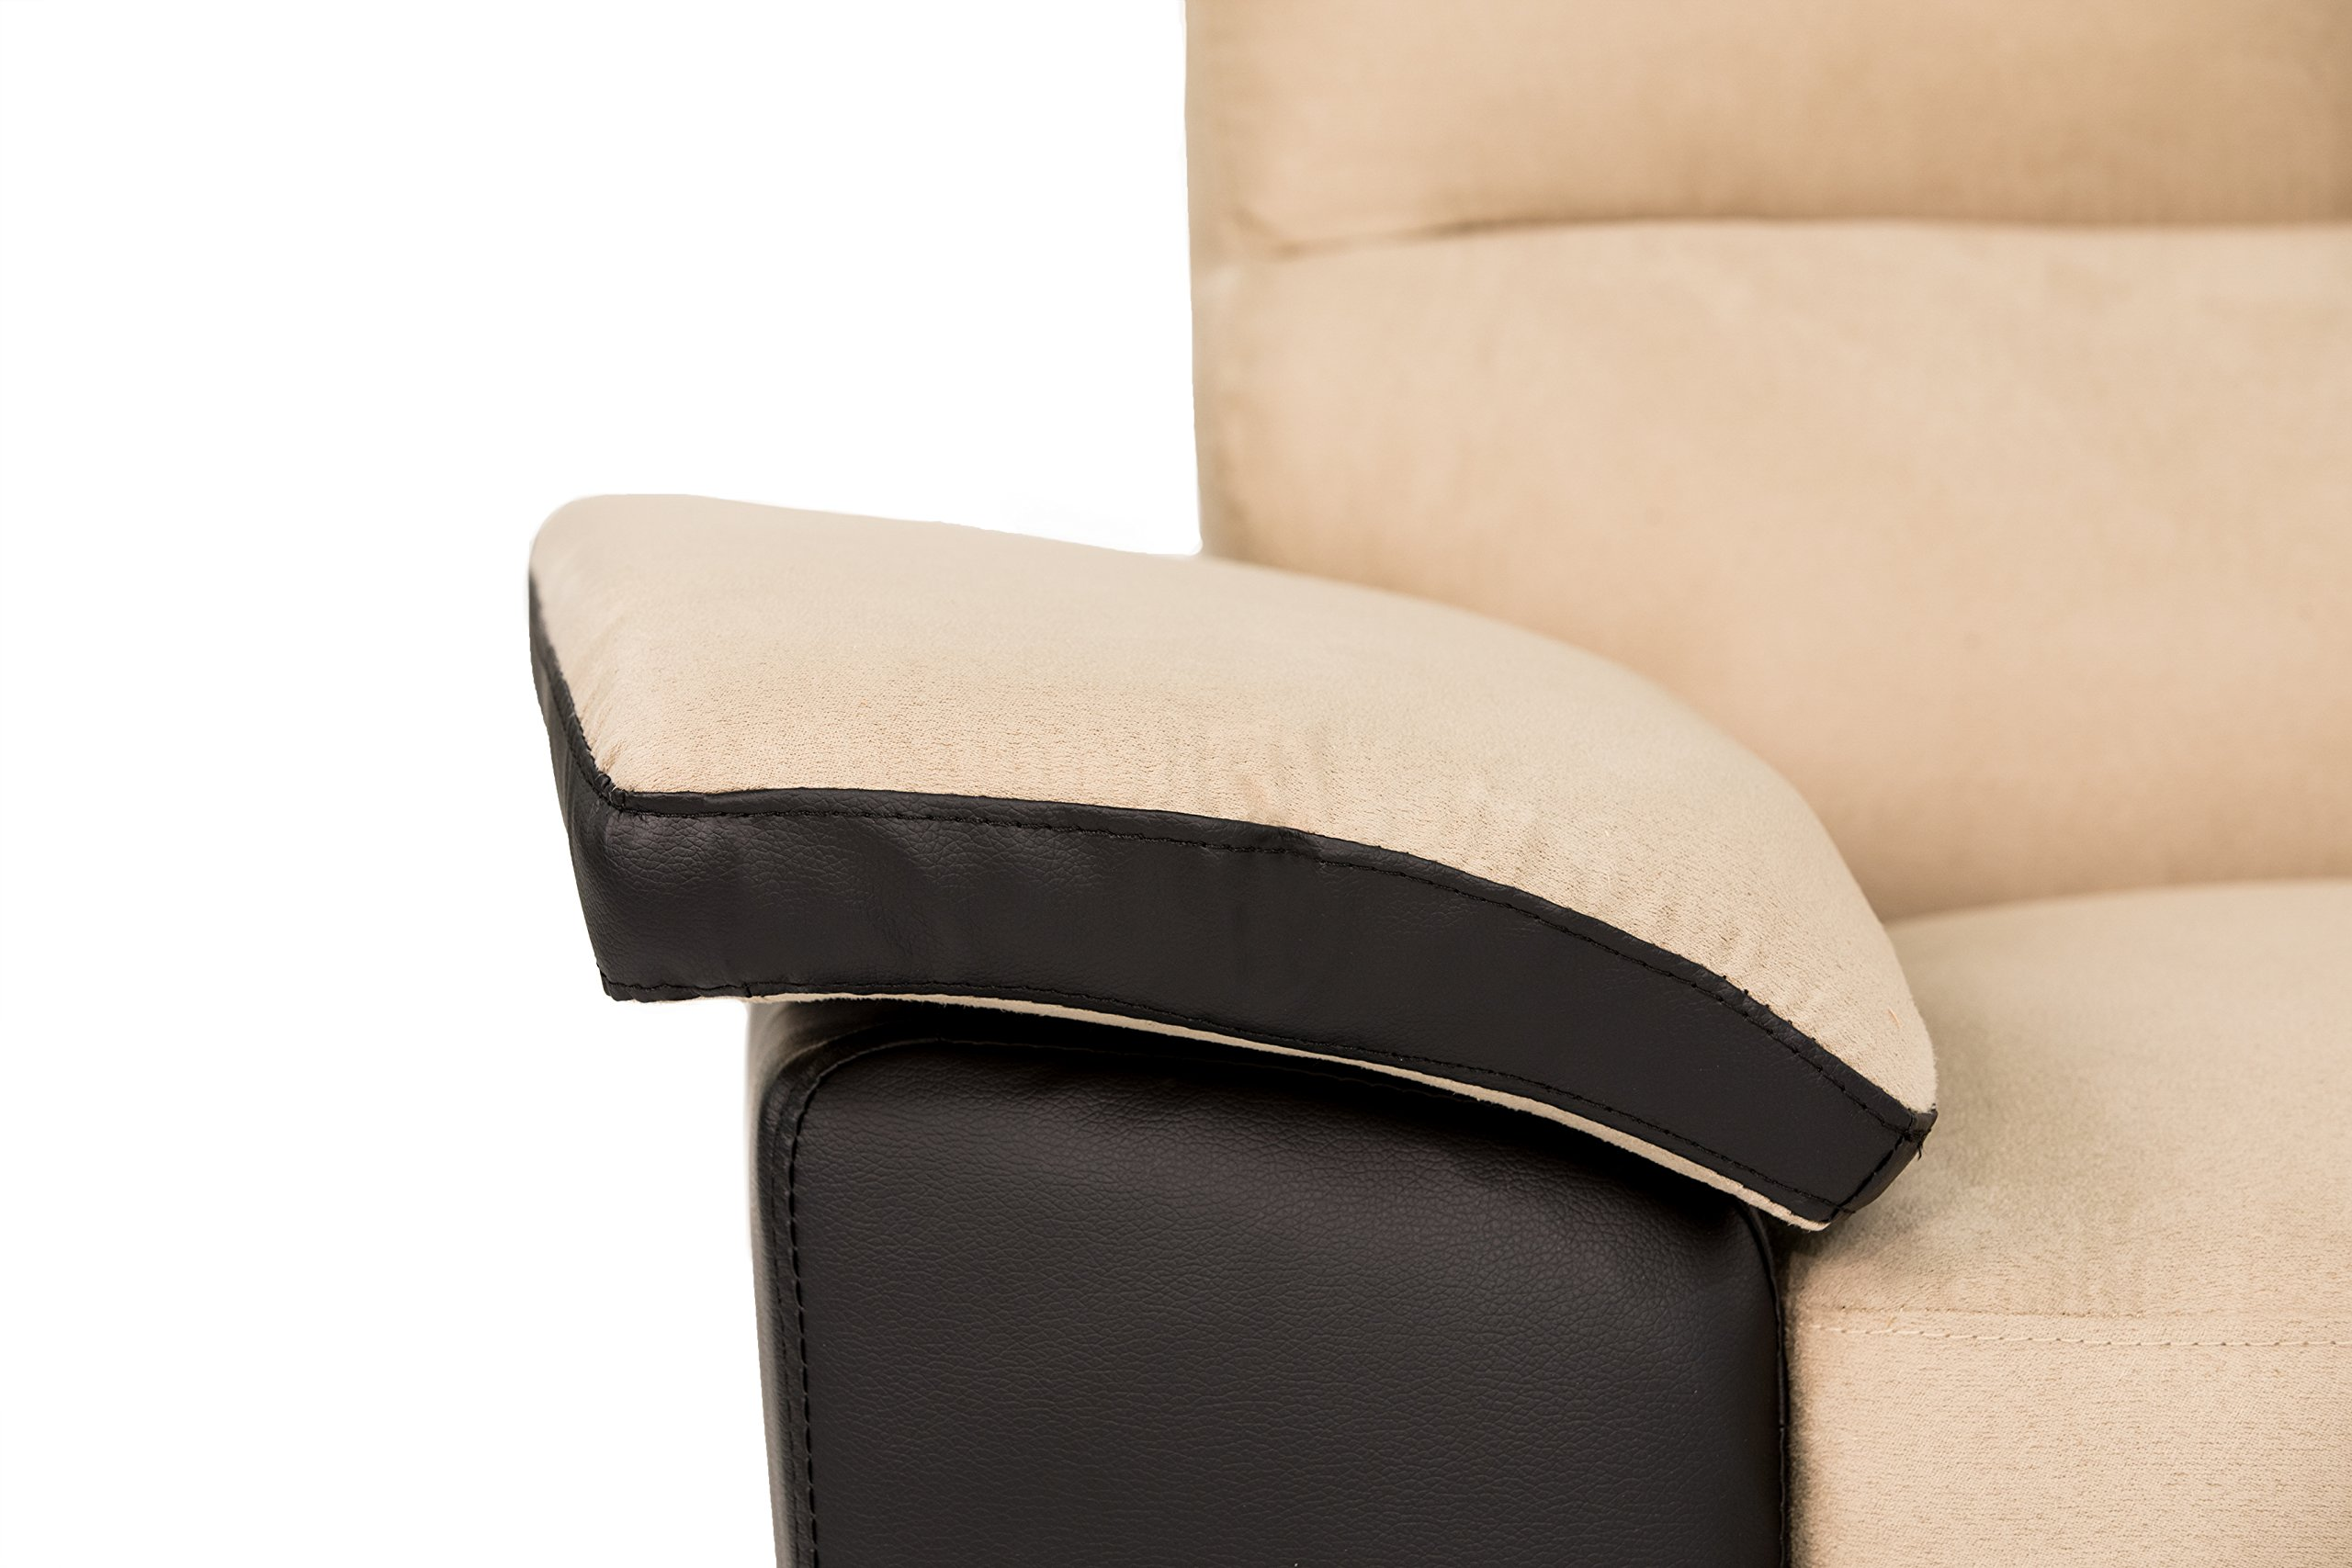 Divano Roma Classic Soft Microfiber and Bonded Leather Living Room Furniture by Madison Home (Image #3)